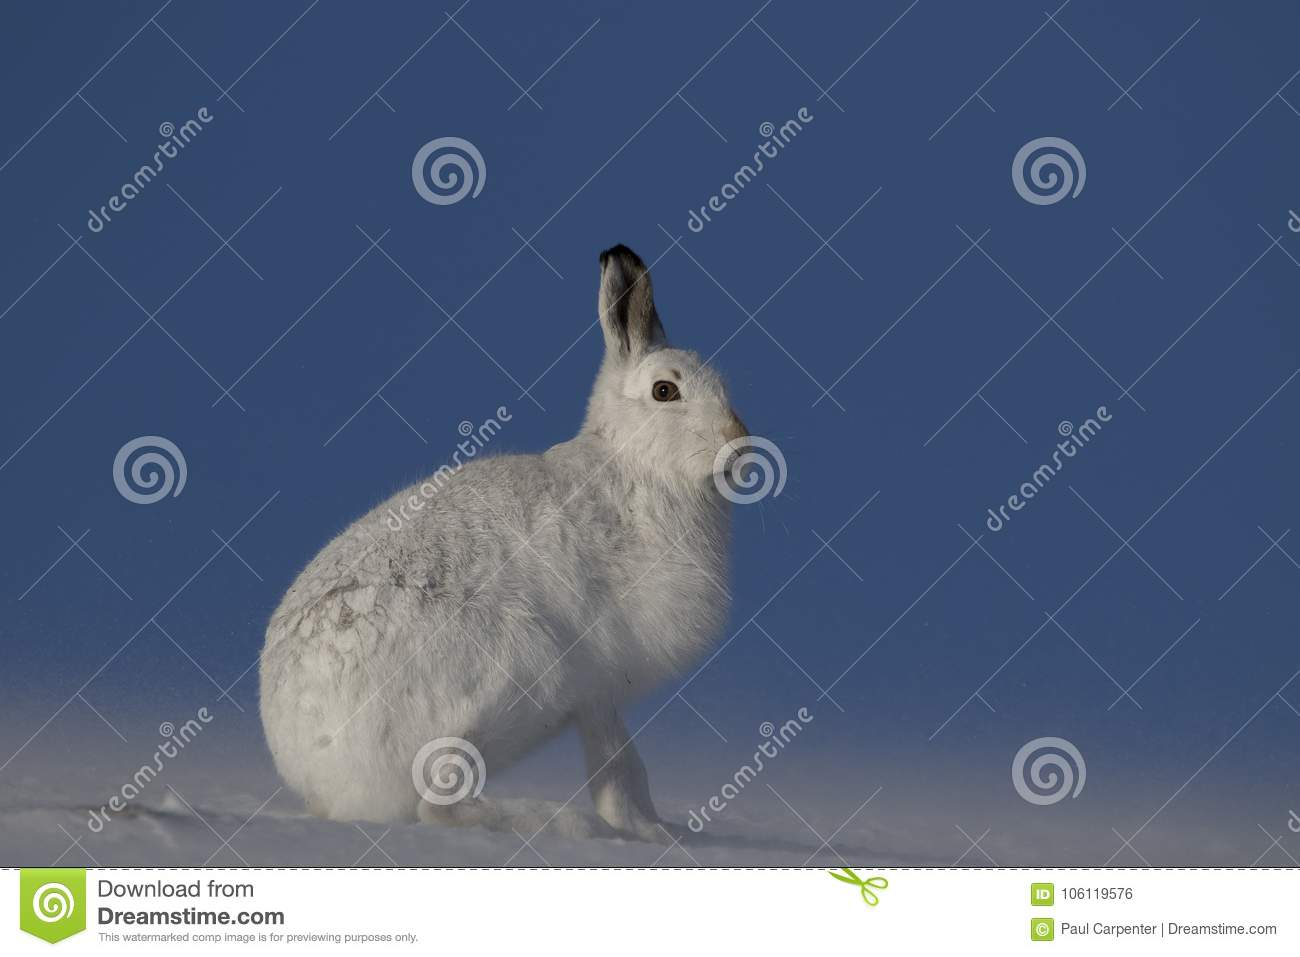 Mountain hare, Lepus timidus, sitting, running on a sunny day in the snow during winter in the cairngorm national park, scotland